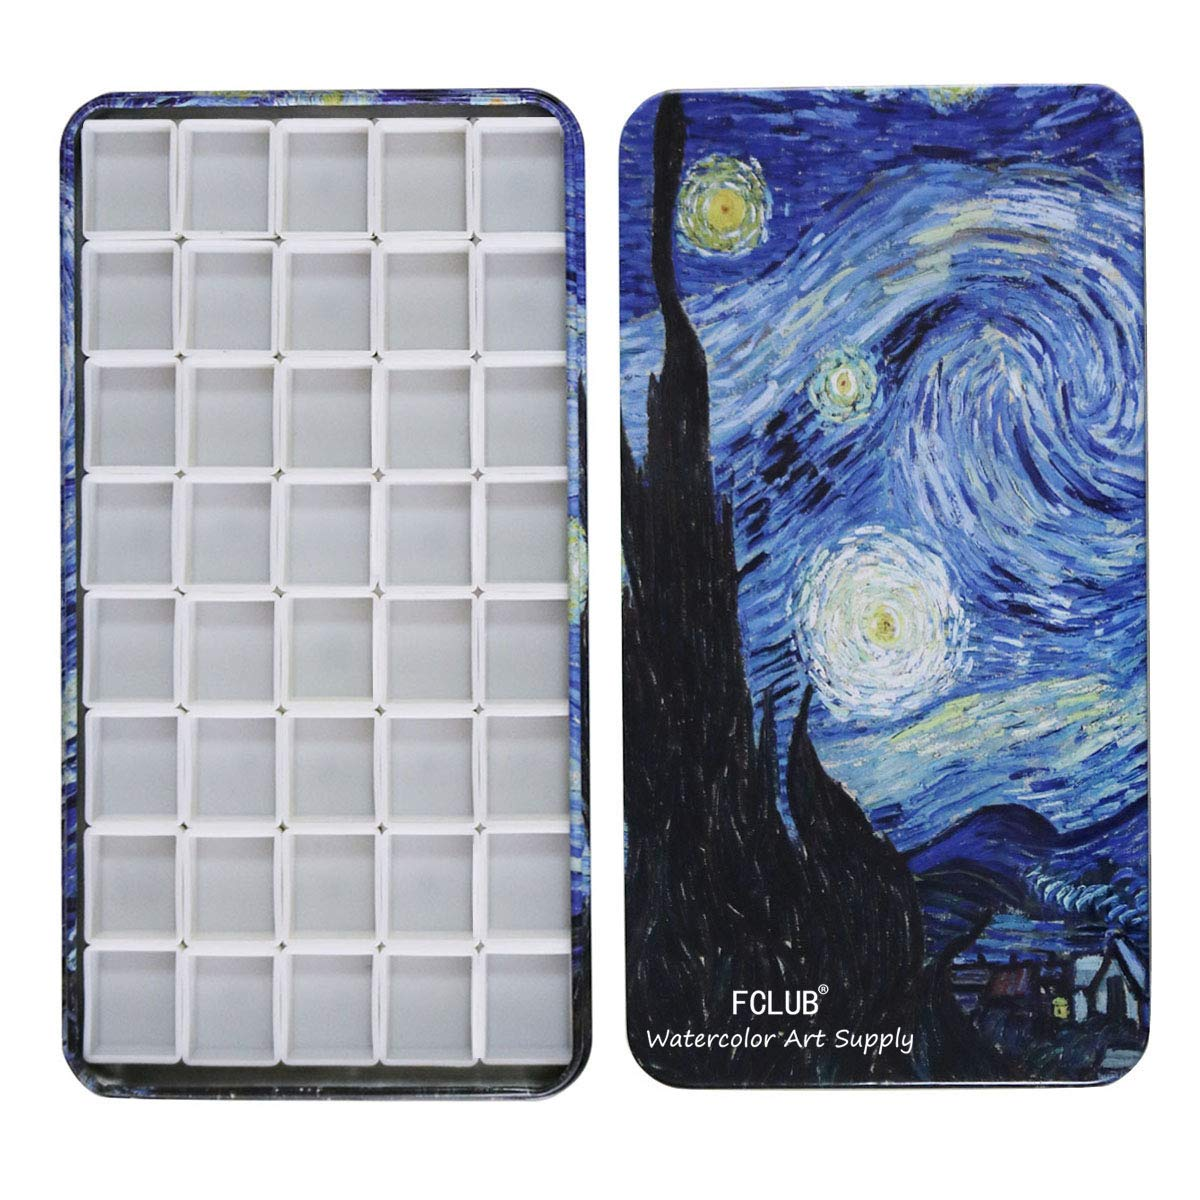 Fclub Watercolor Tins Palette Paint Case with 20Pcs Empty Full Pans and 50pcs Magnetic Squares.DIY Your Travel Watercolor Kit!